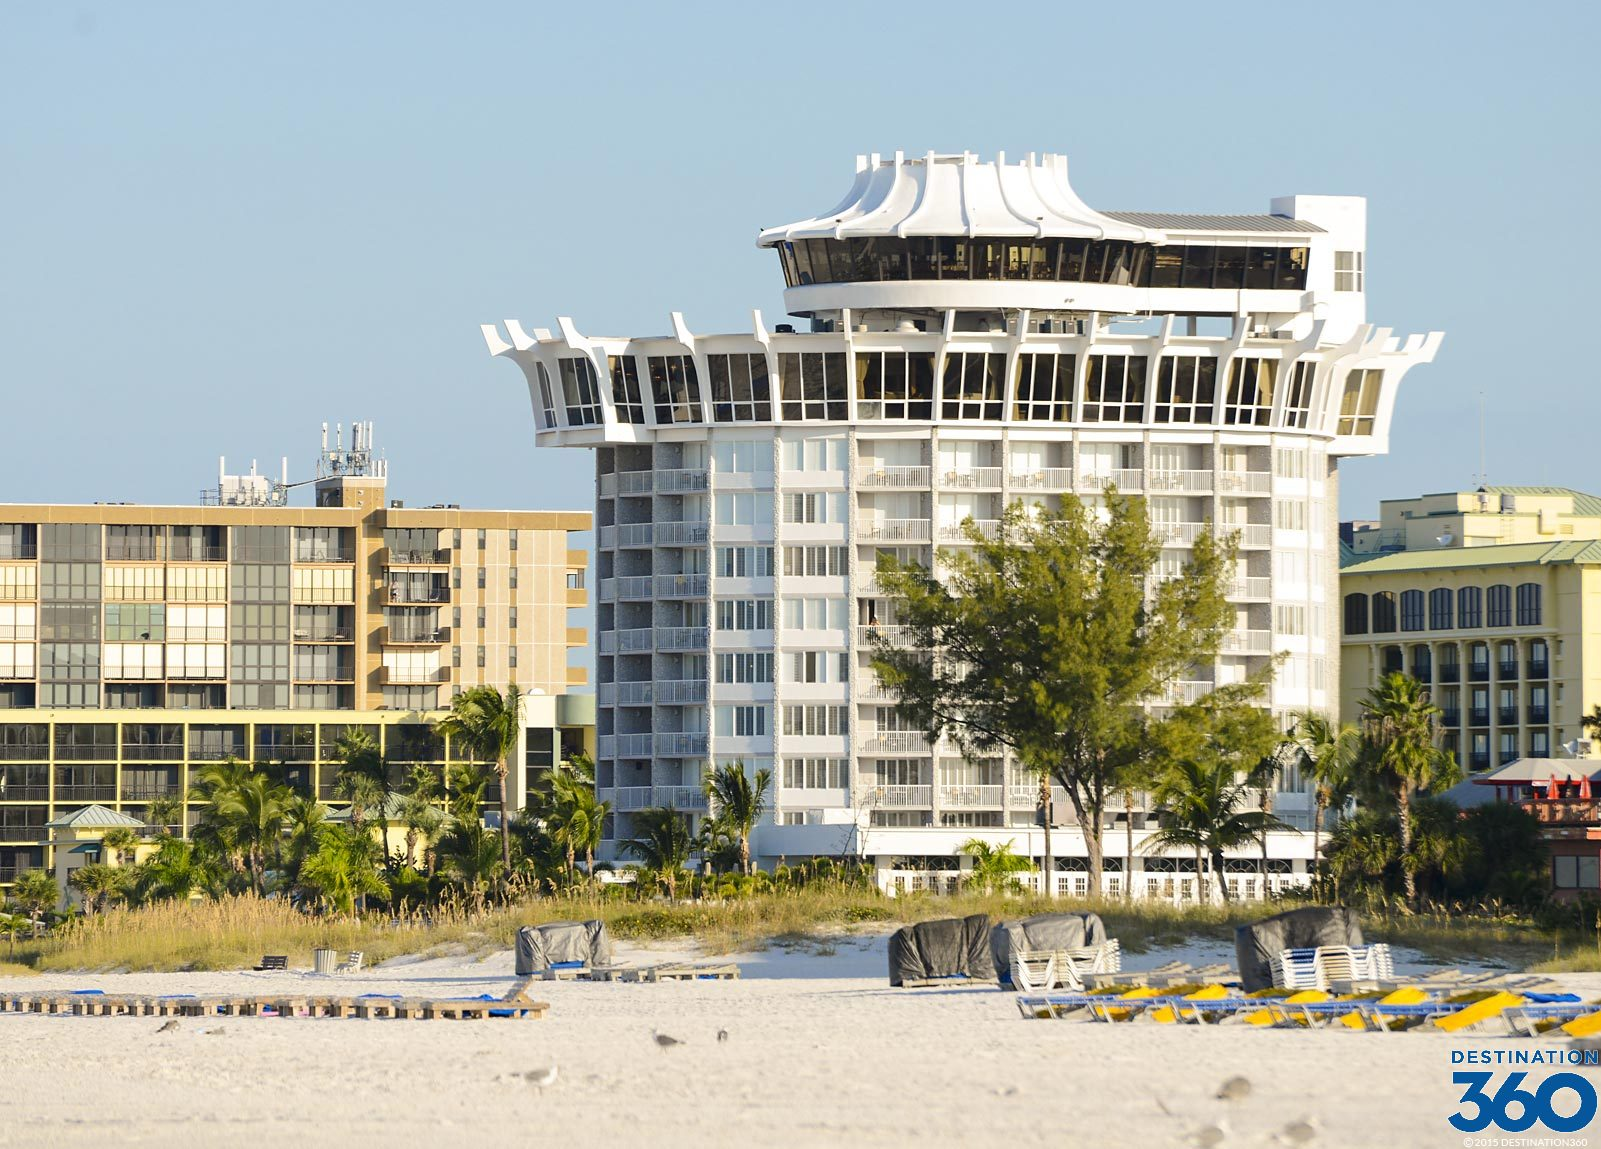 St Petersburg Beach Resorts